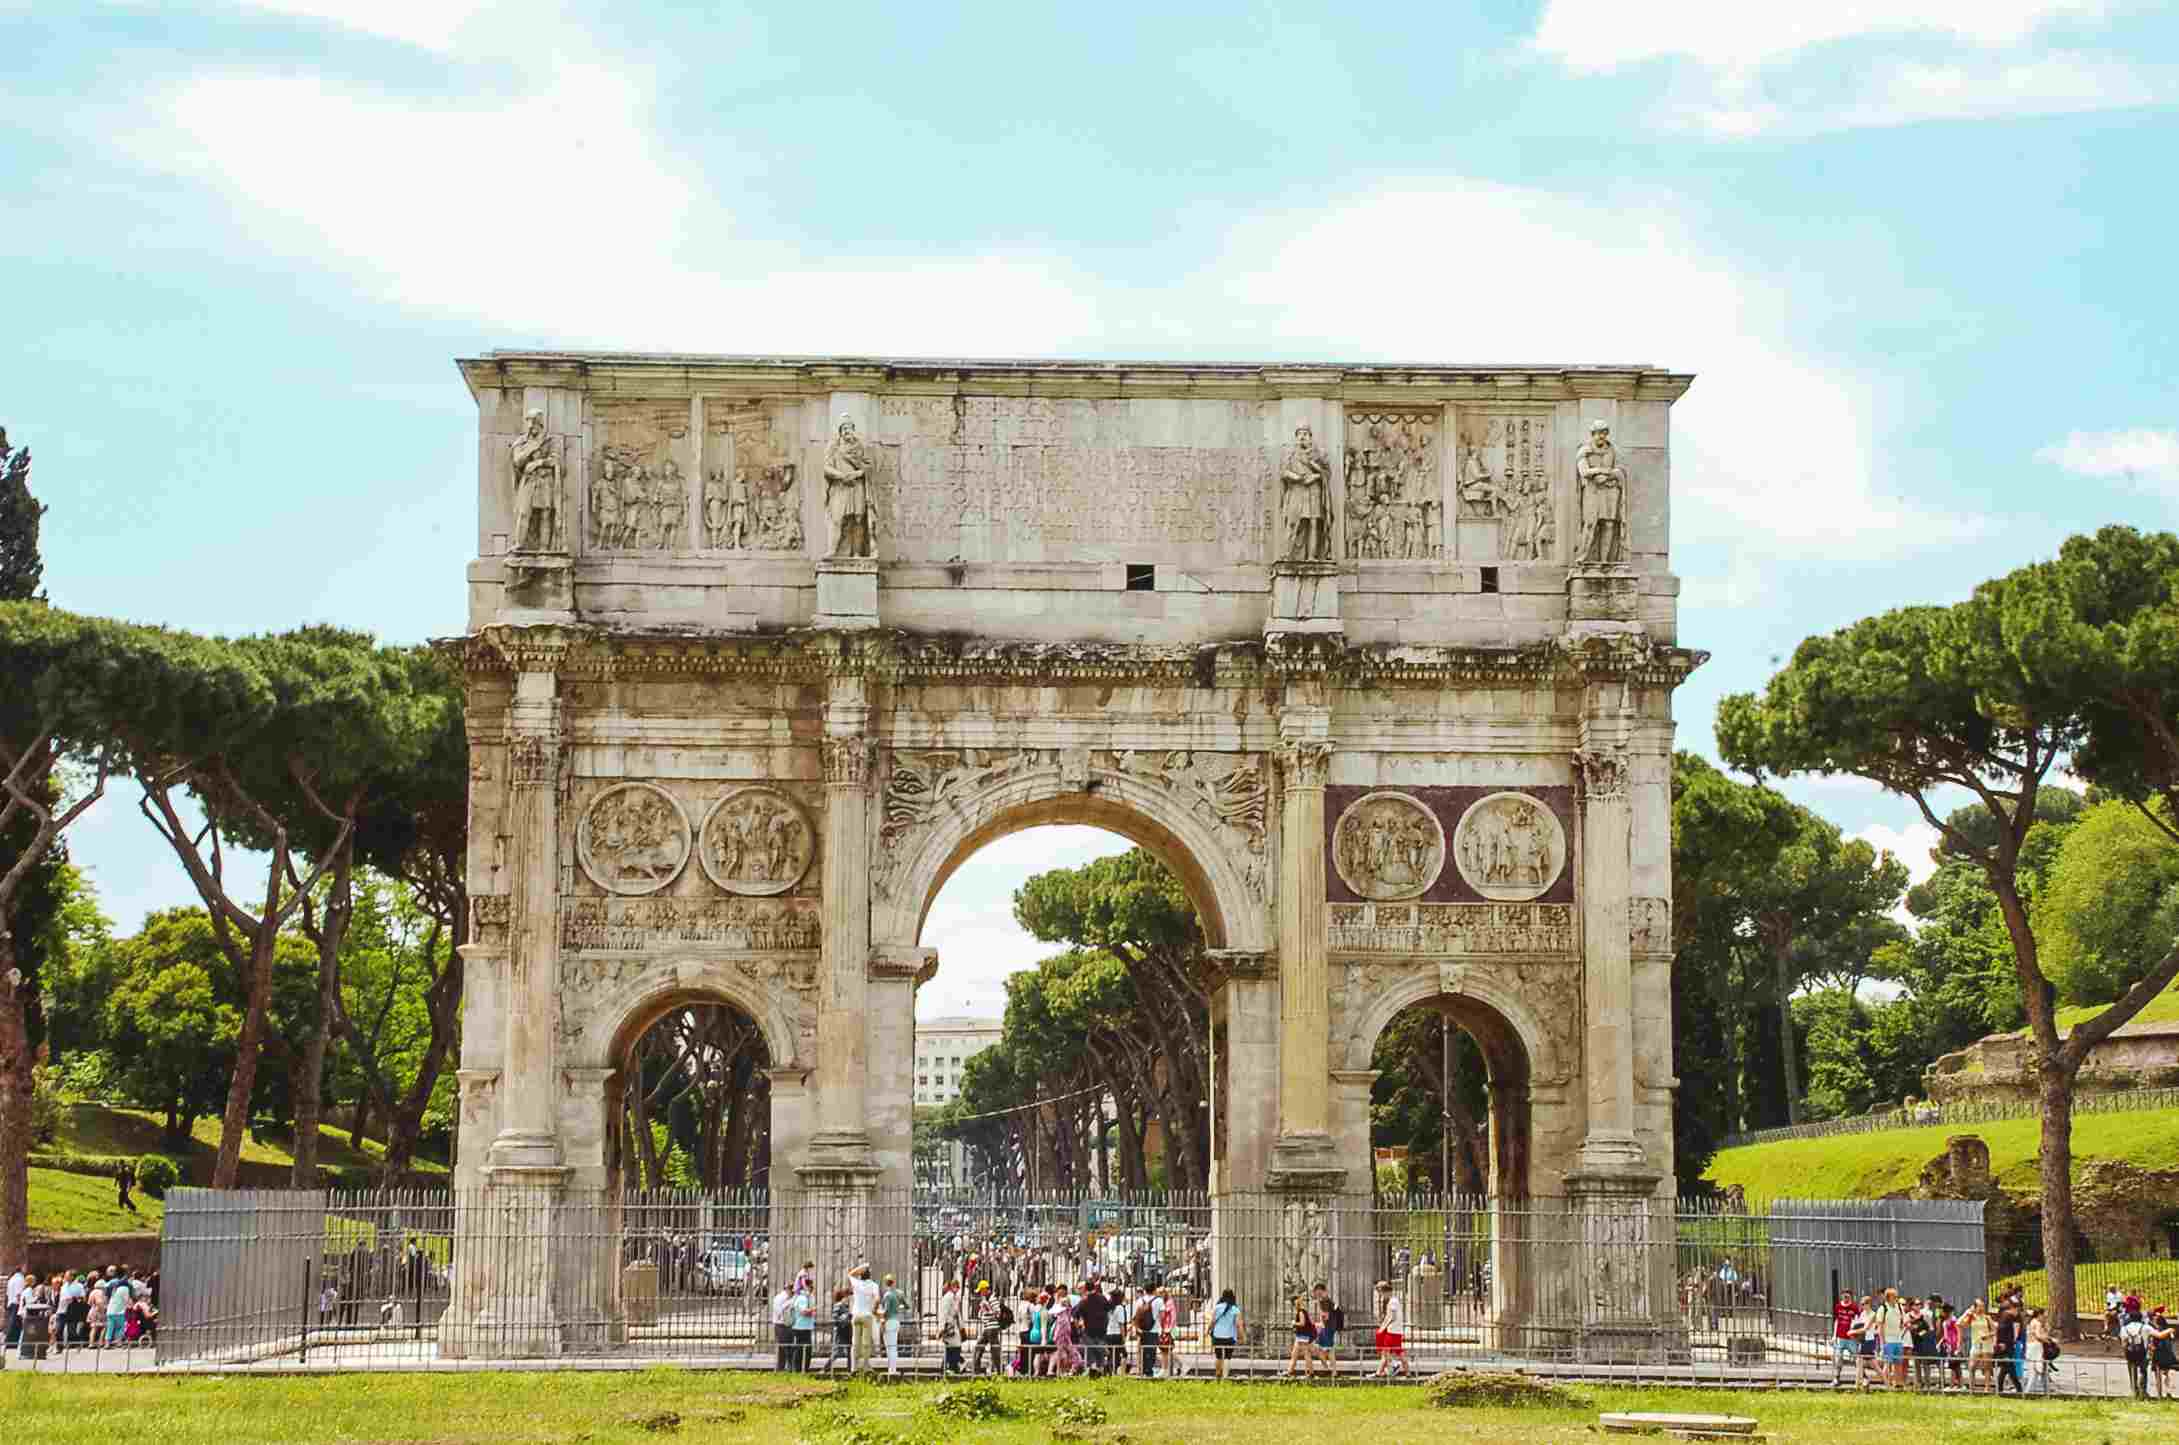 An ancient archway in Rome